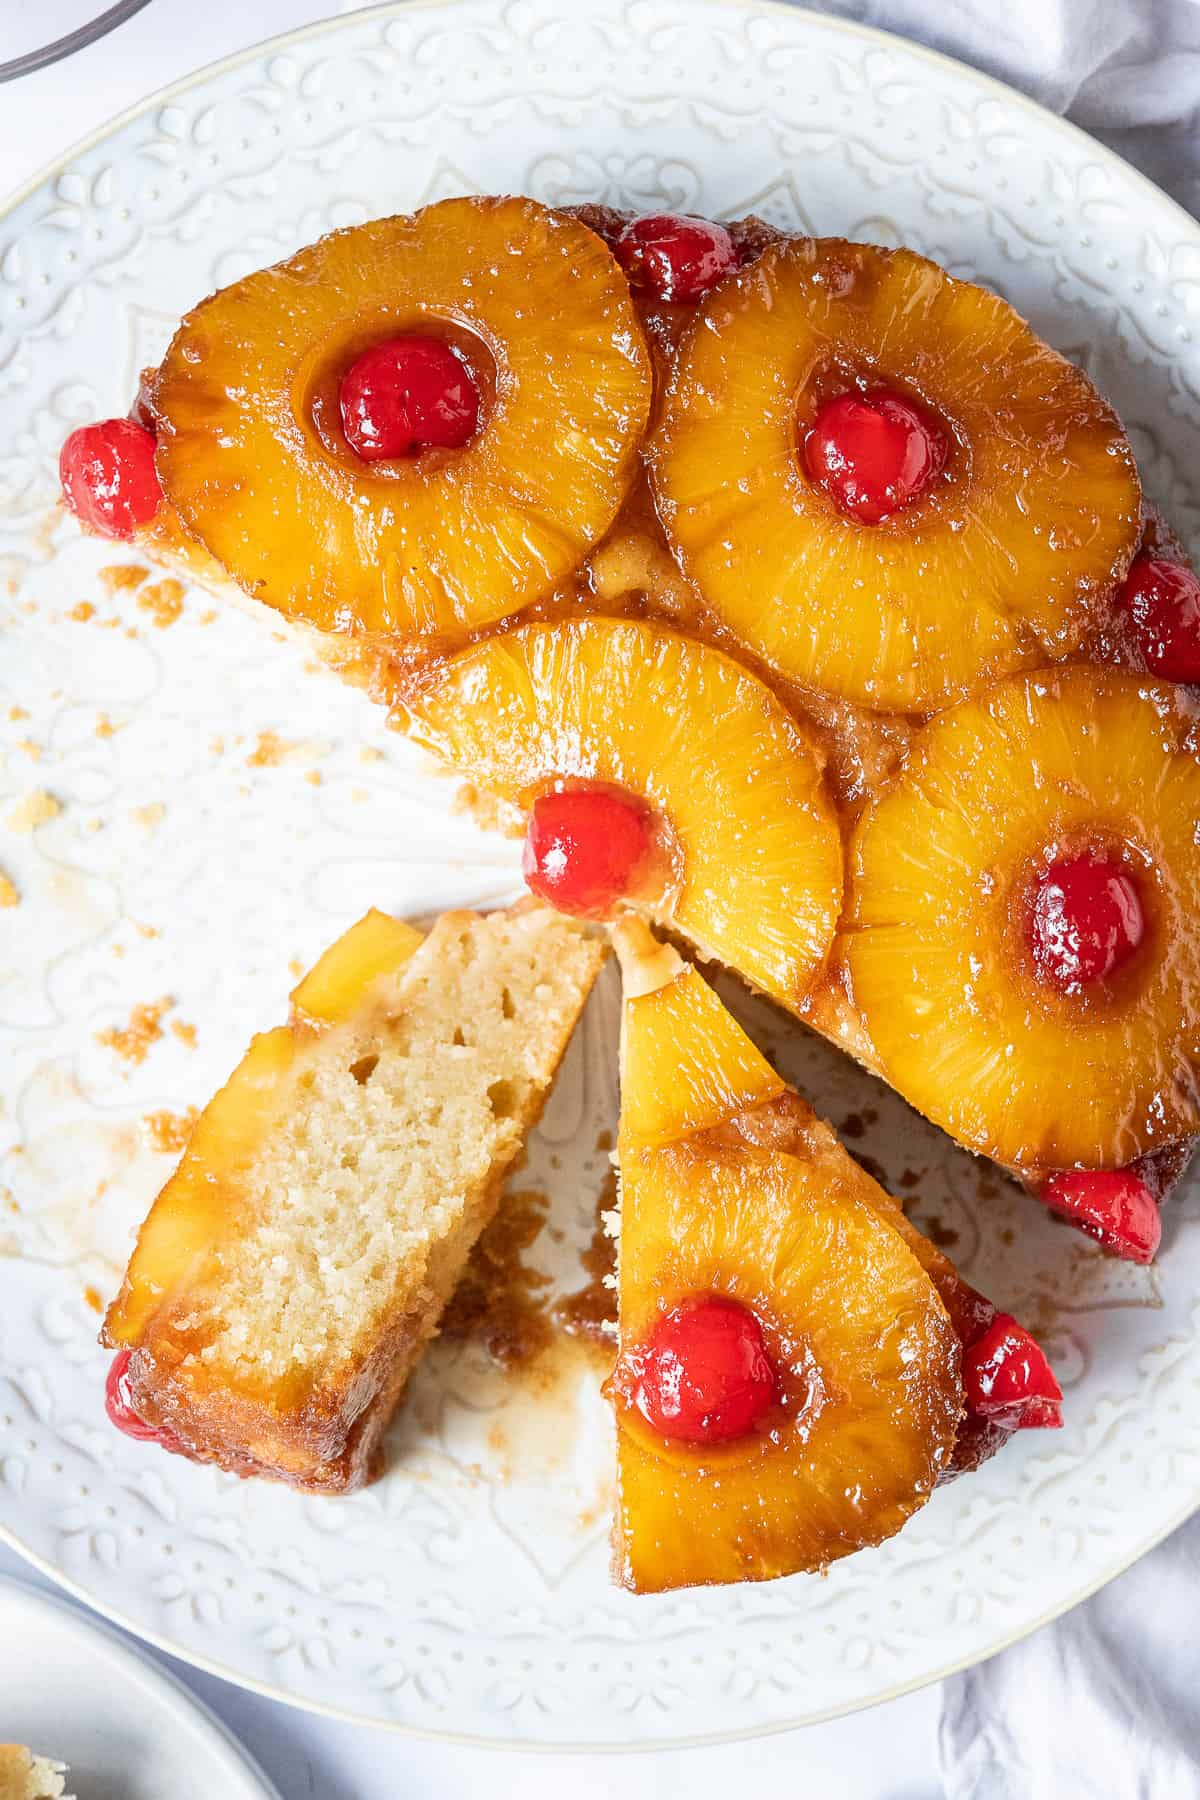 Close up of vegan pineapple upside-down cake, cut into slices.